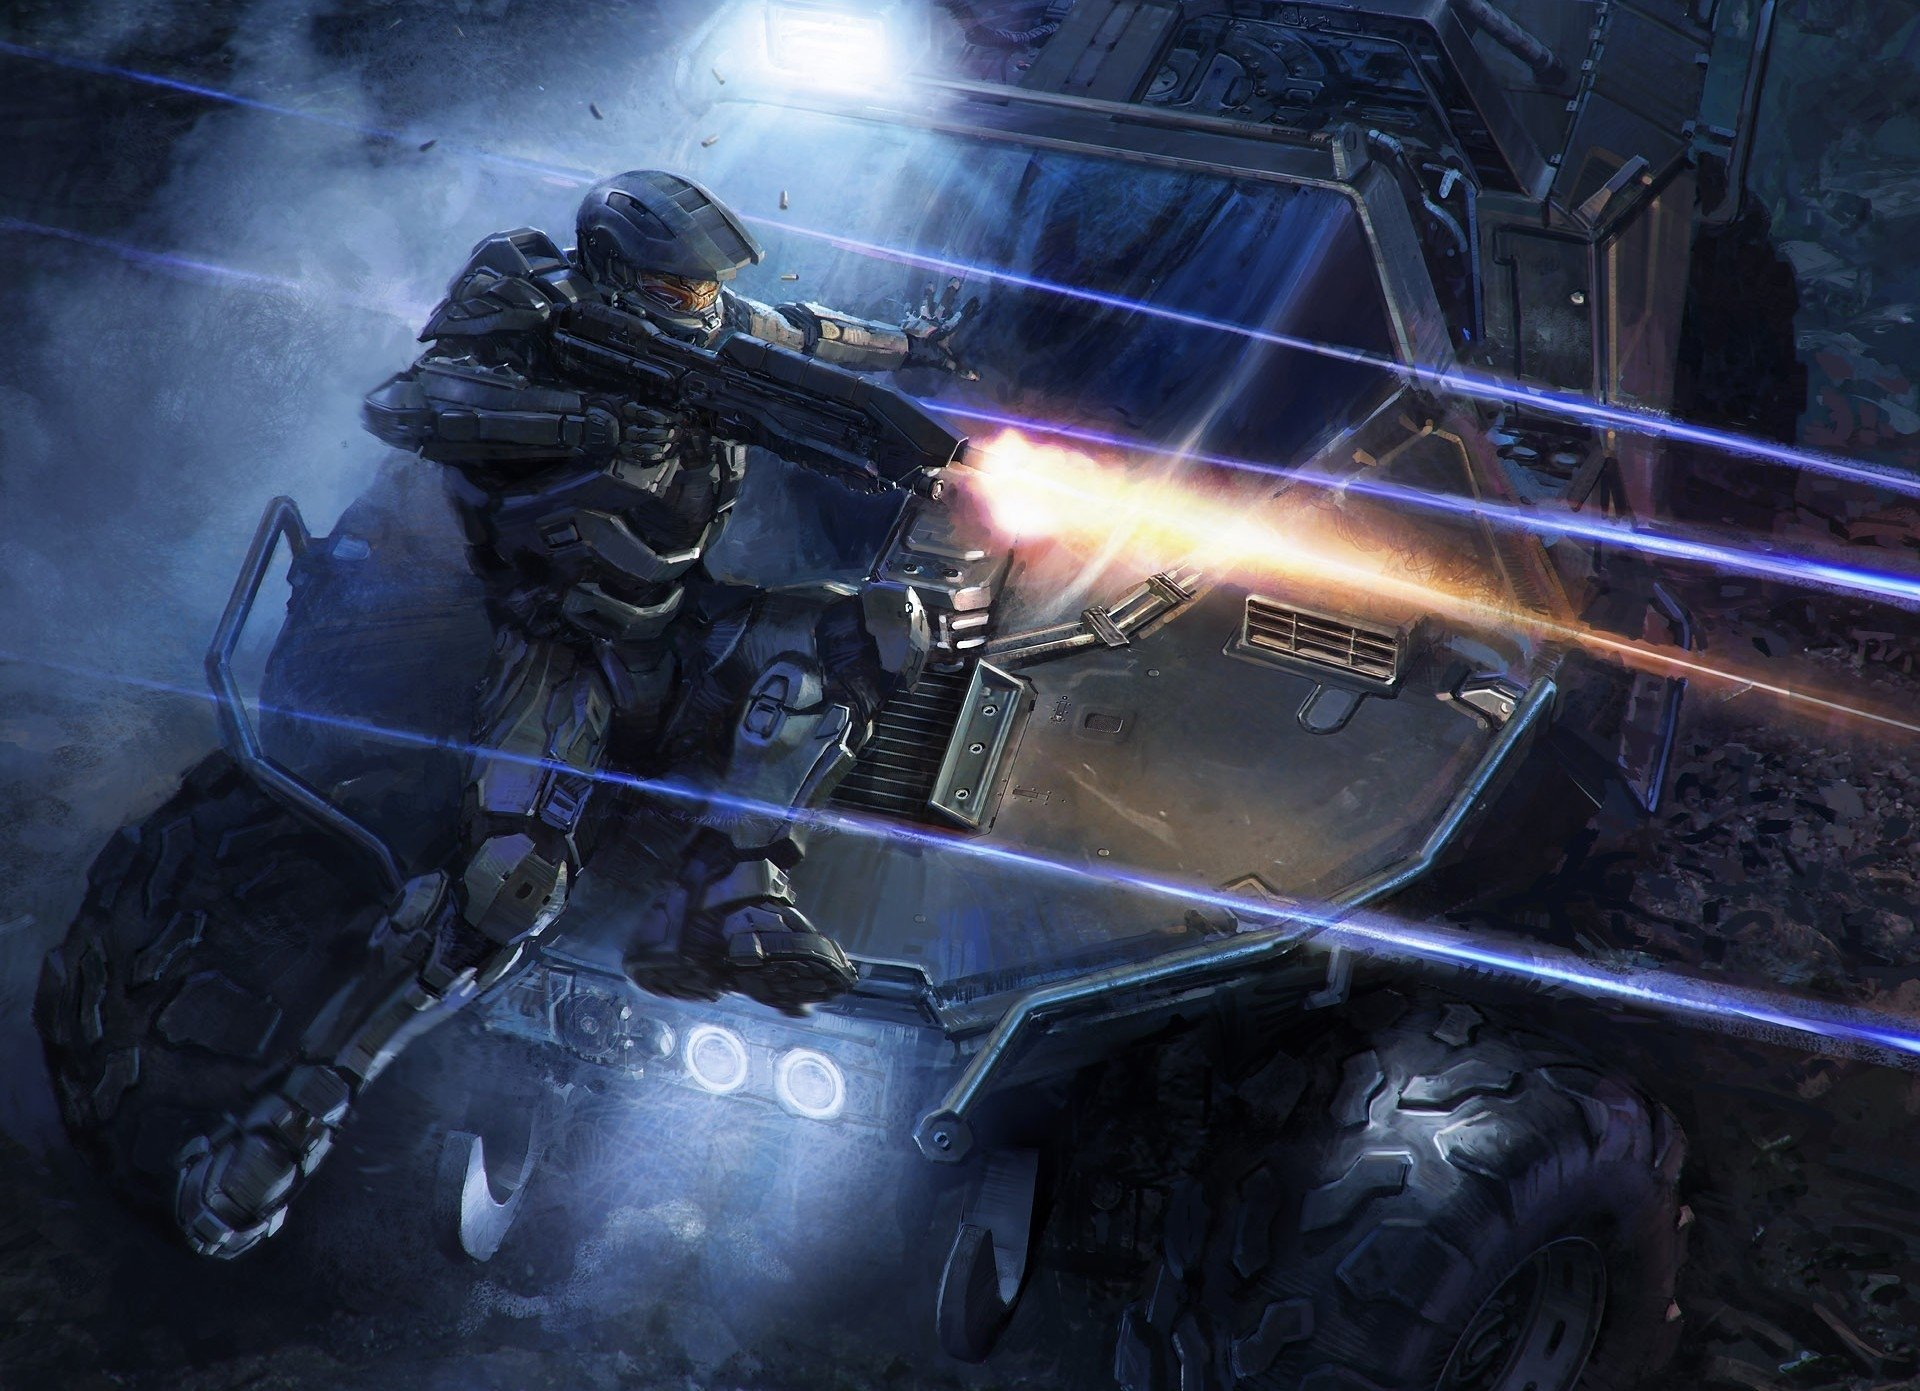 Video Game - Halo  Master Chief Vehicle Weapon Gun Warrior Sci Fi Video Game Wallpaper